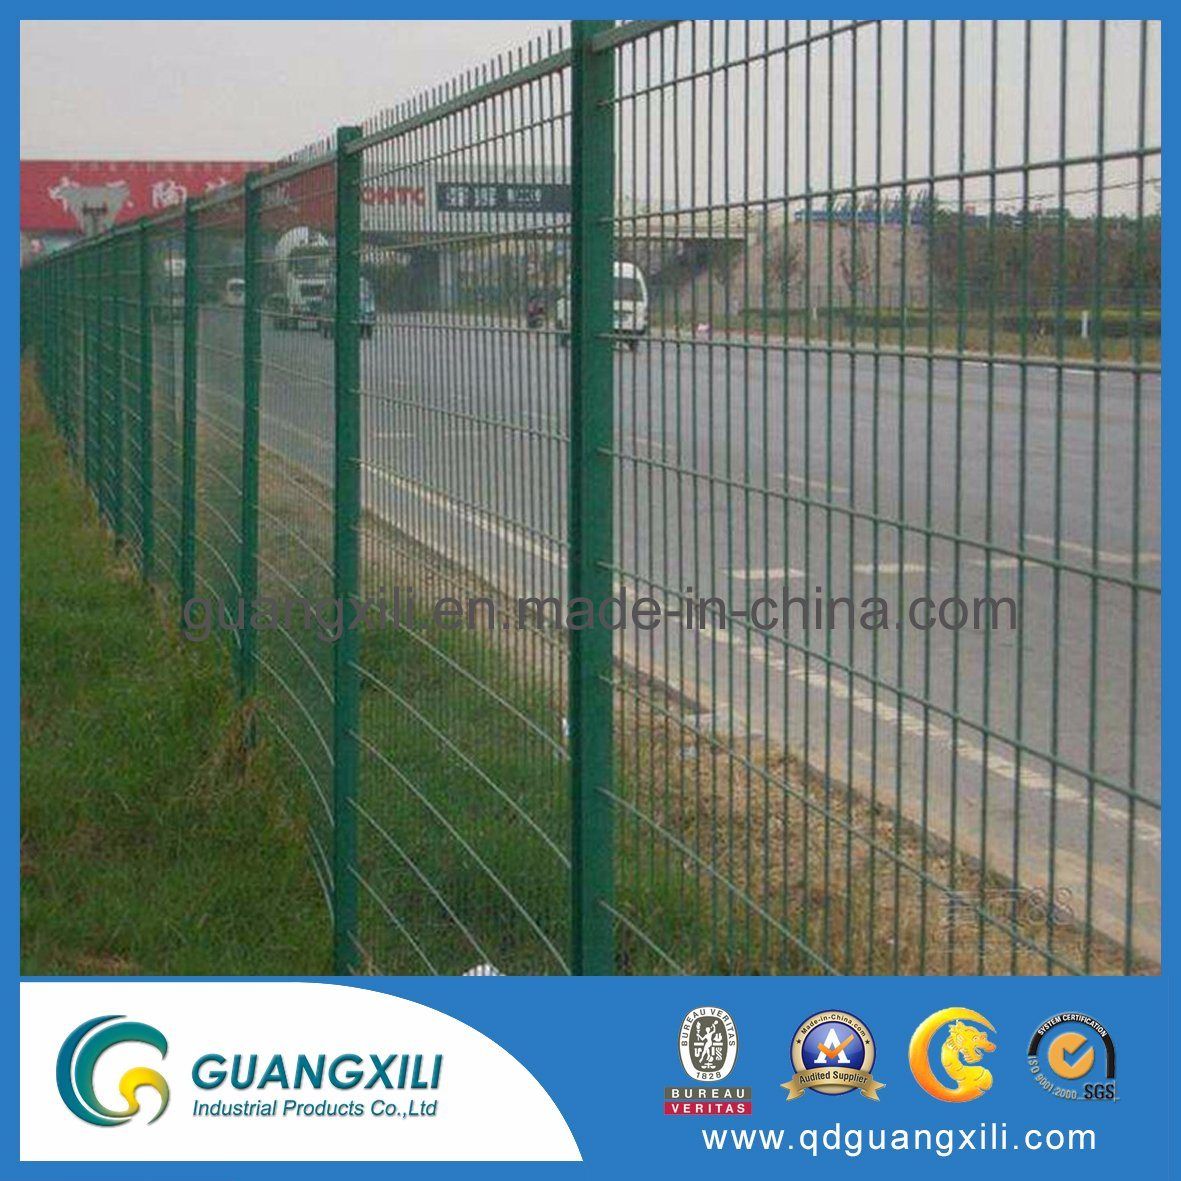 Steel Wire Fence | China Construction Road Steel Wire Temporary Galvanized Safety Fence